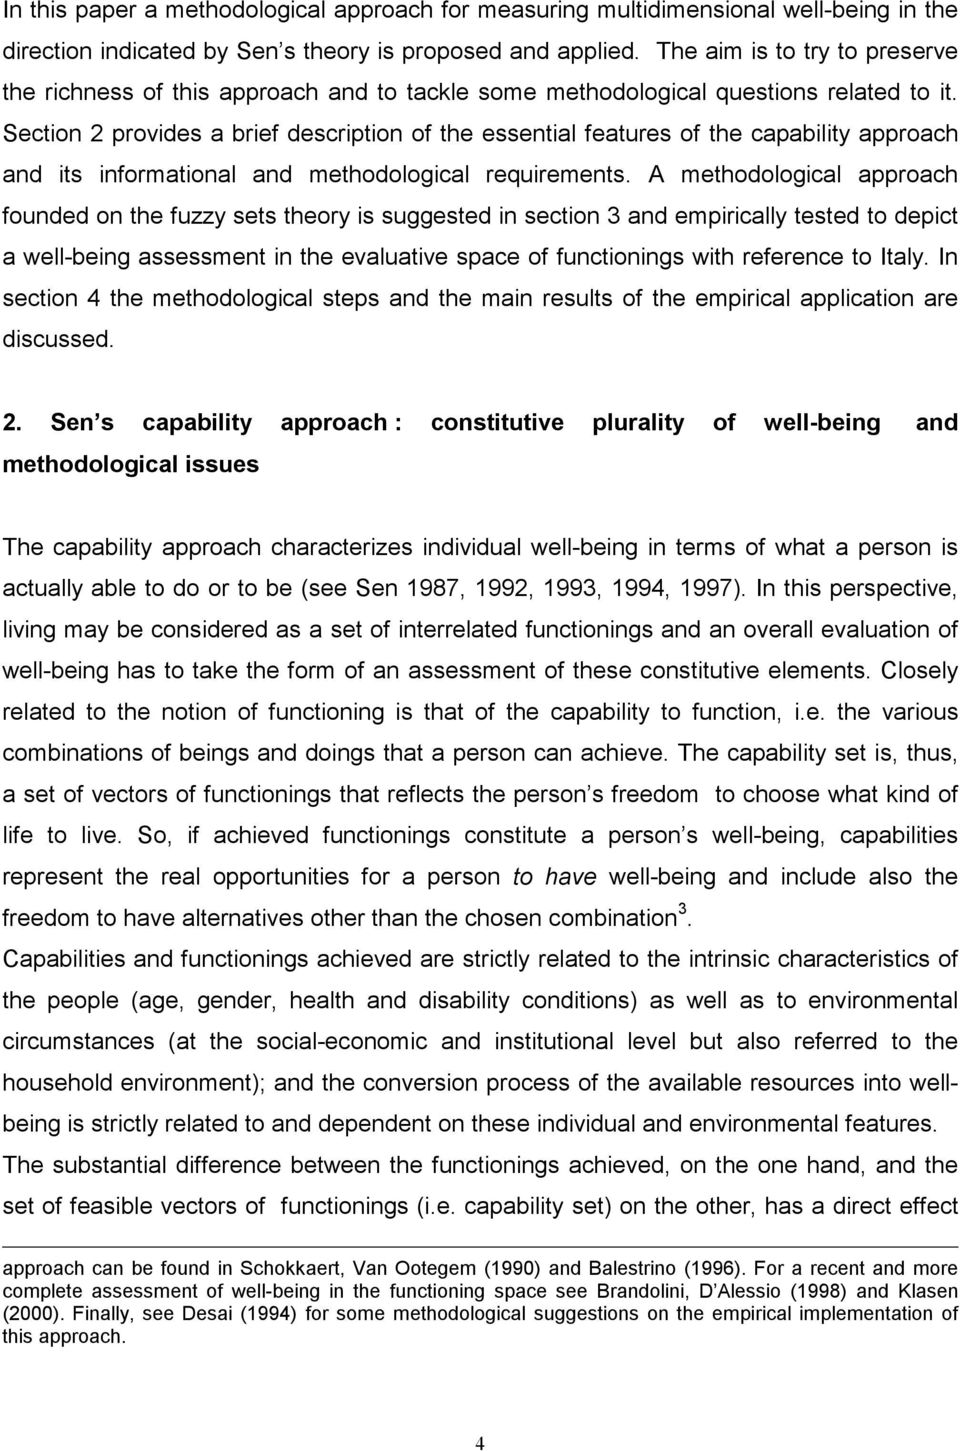 Section 2 provides a brief description of the essential features of the capability approach and its informational and methodological requirements.